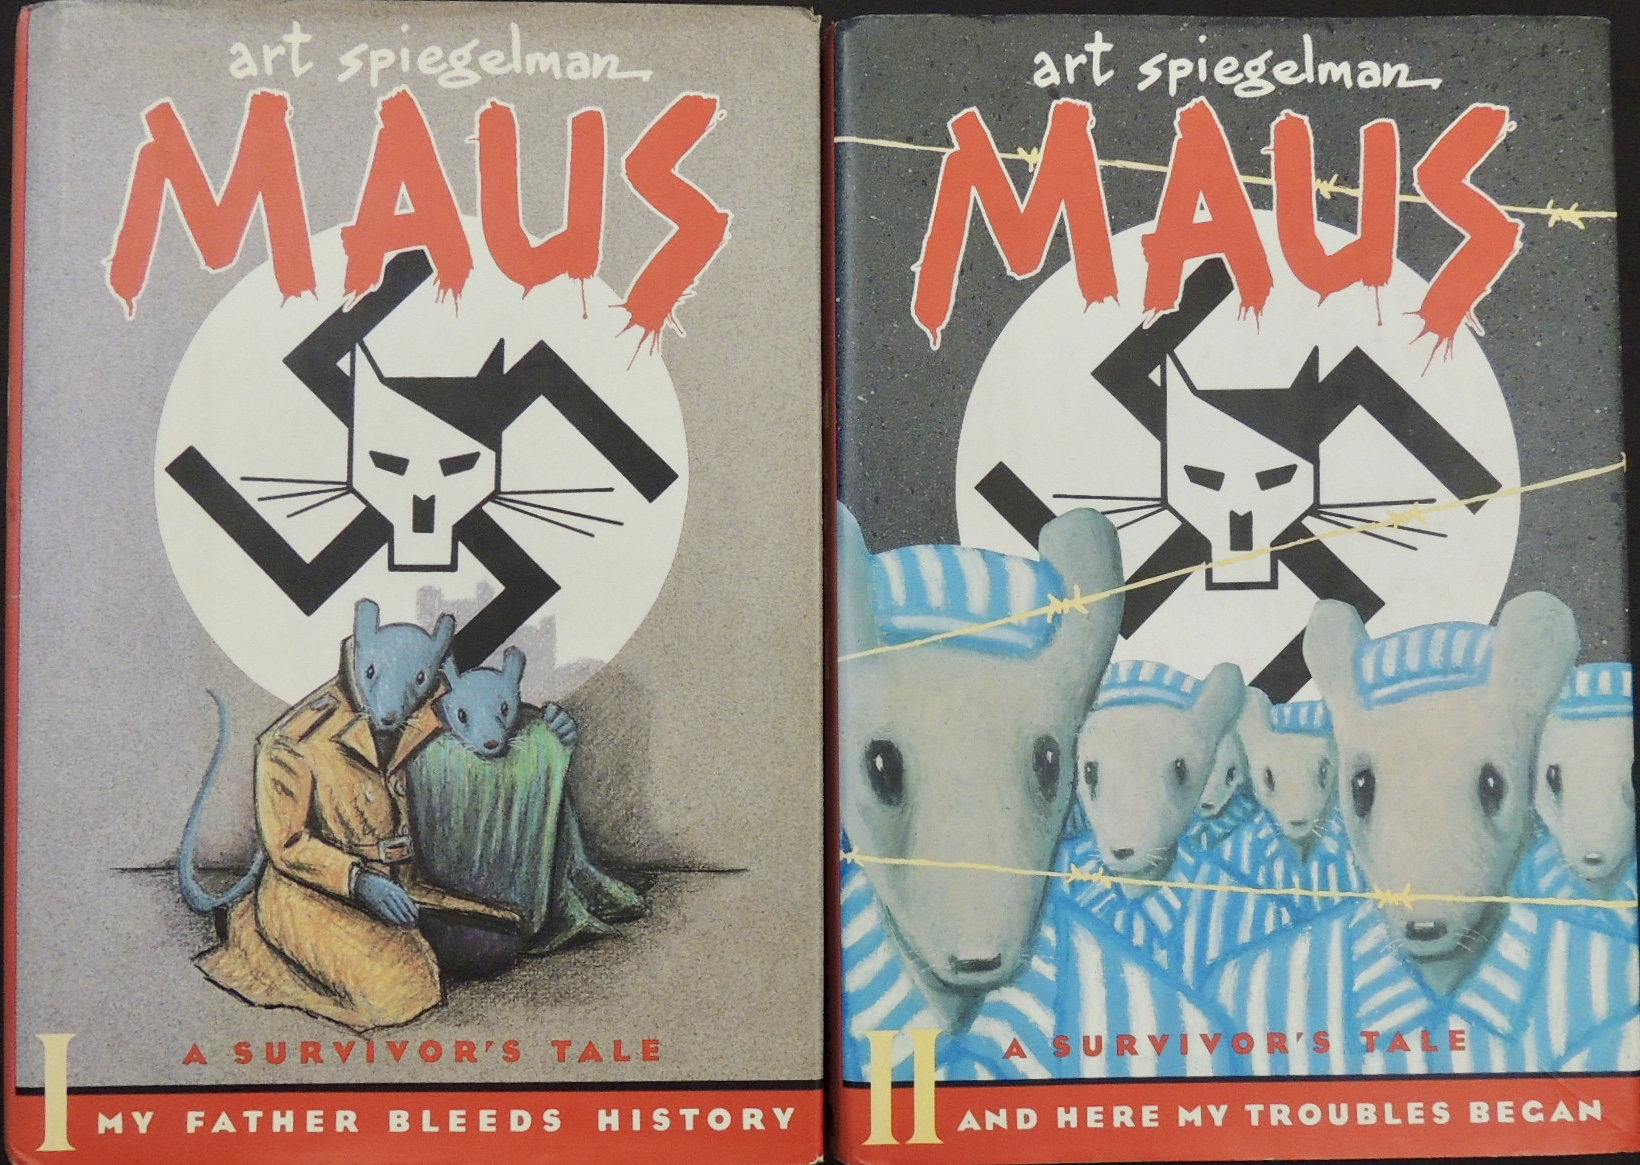 racism in art spiegelmans maus essay Influential artist and graphic novelist he was born february 15, 1948 in stockholm, sweden his parents were polish jews who survived the death camps of the holocaust, so after a few years the family migrated to america soon after in 1957.